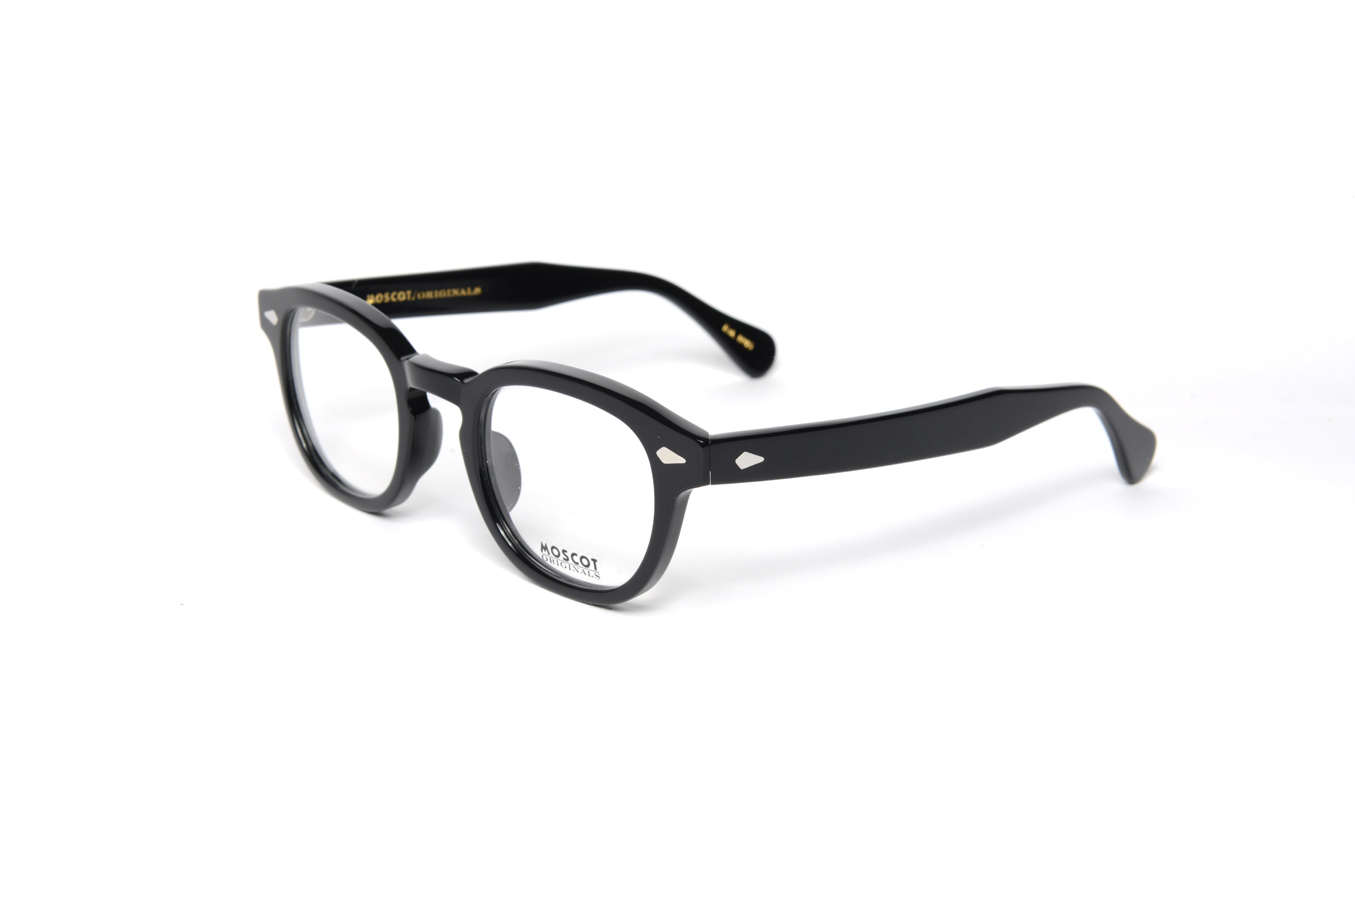 9610cd4ac89f Moscot - Lemtosh - Piccadilly Opticians -